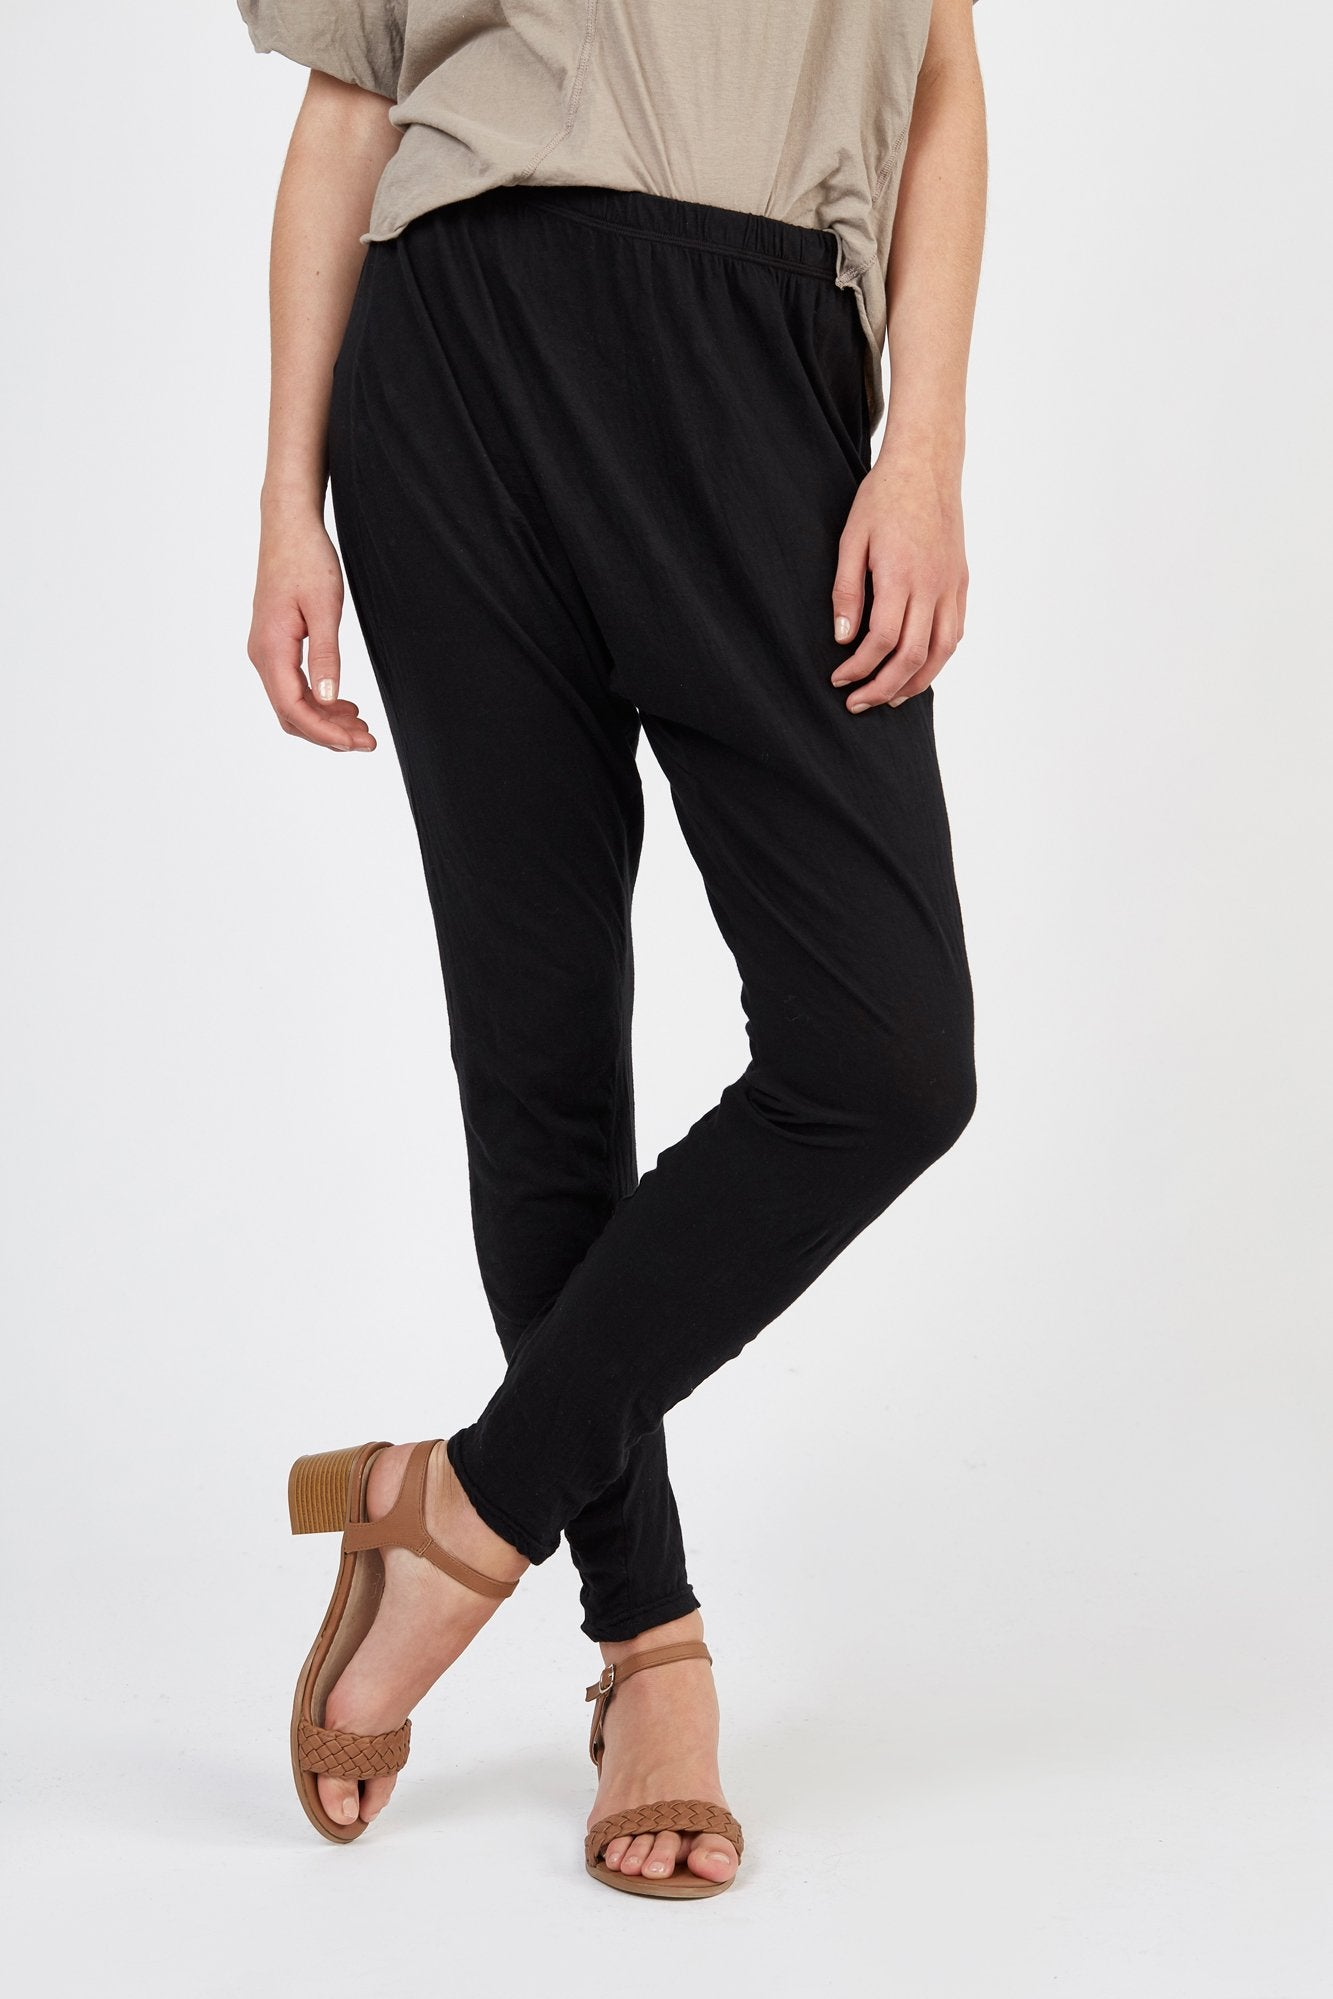 COTSI TWISTY PANT - NOIR